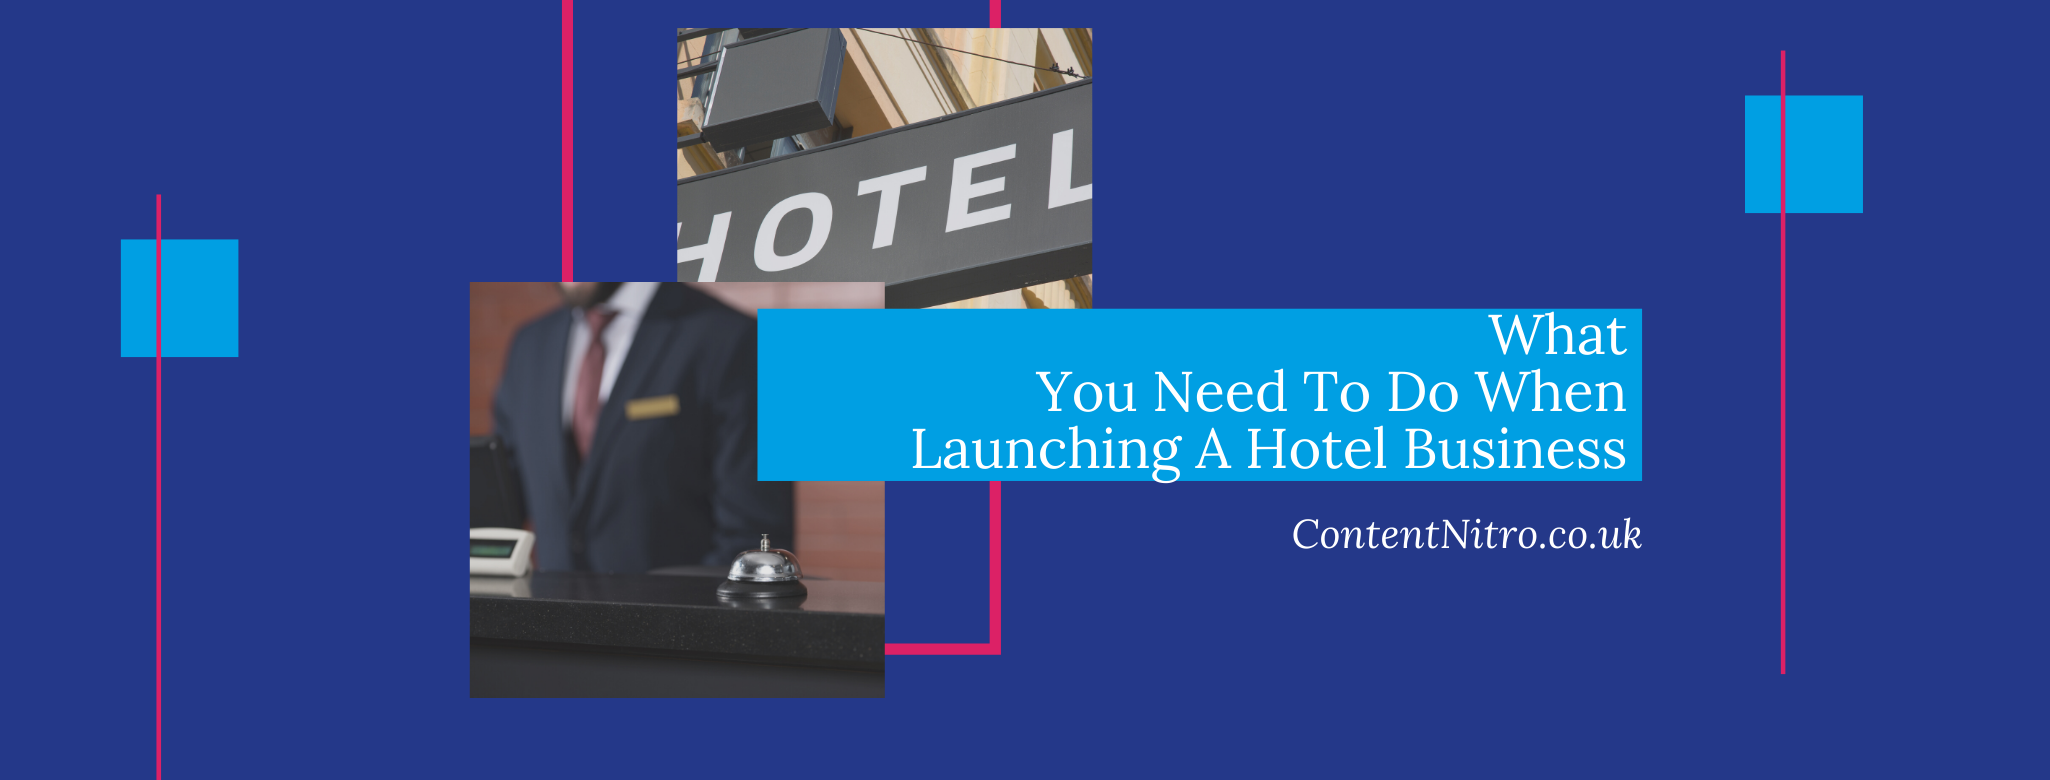 What You Need To Do When Launching A Hotel Business